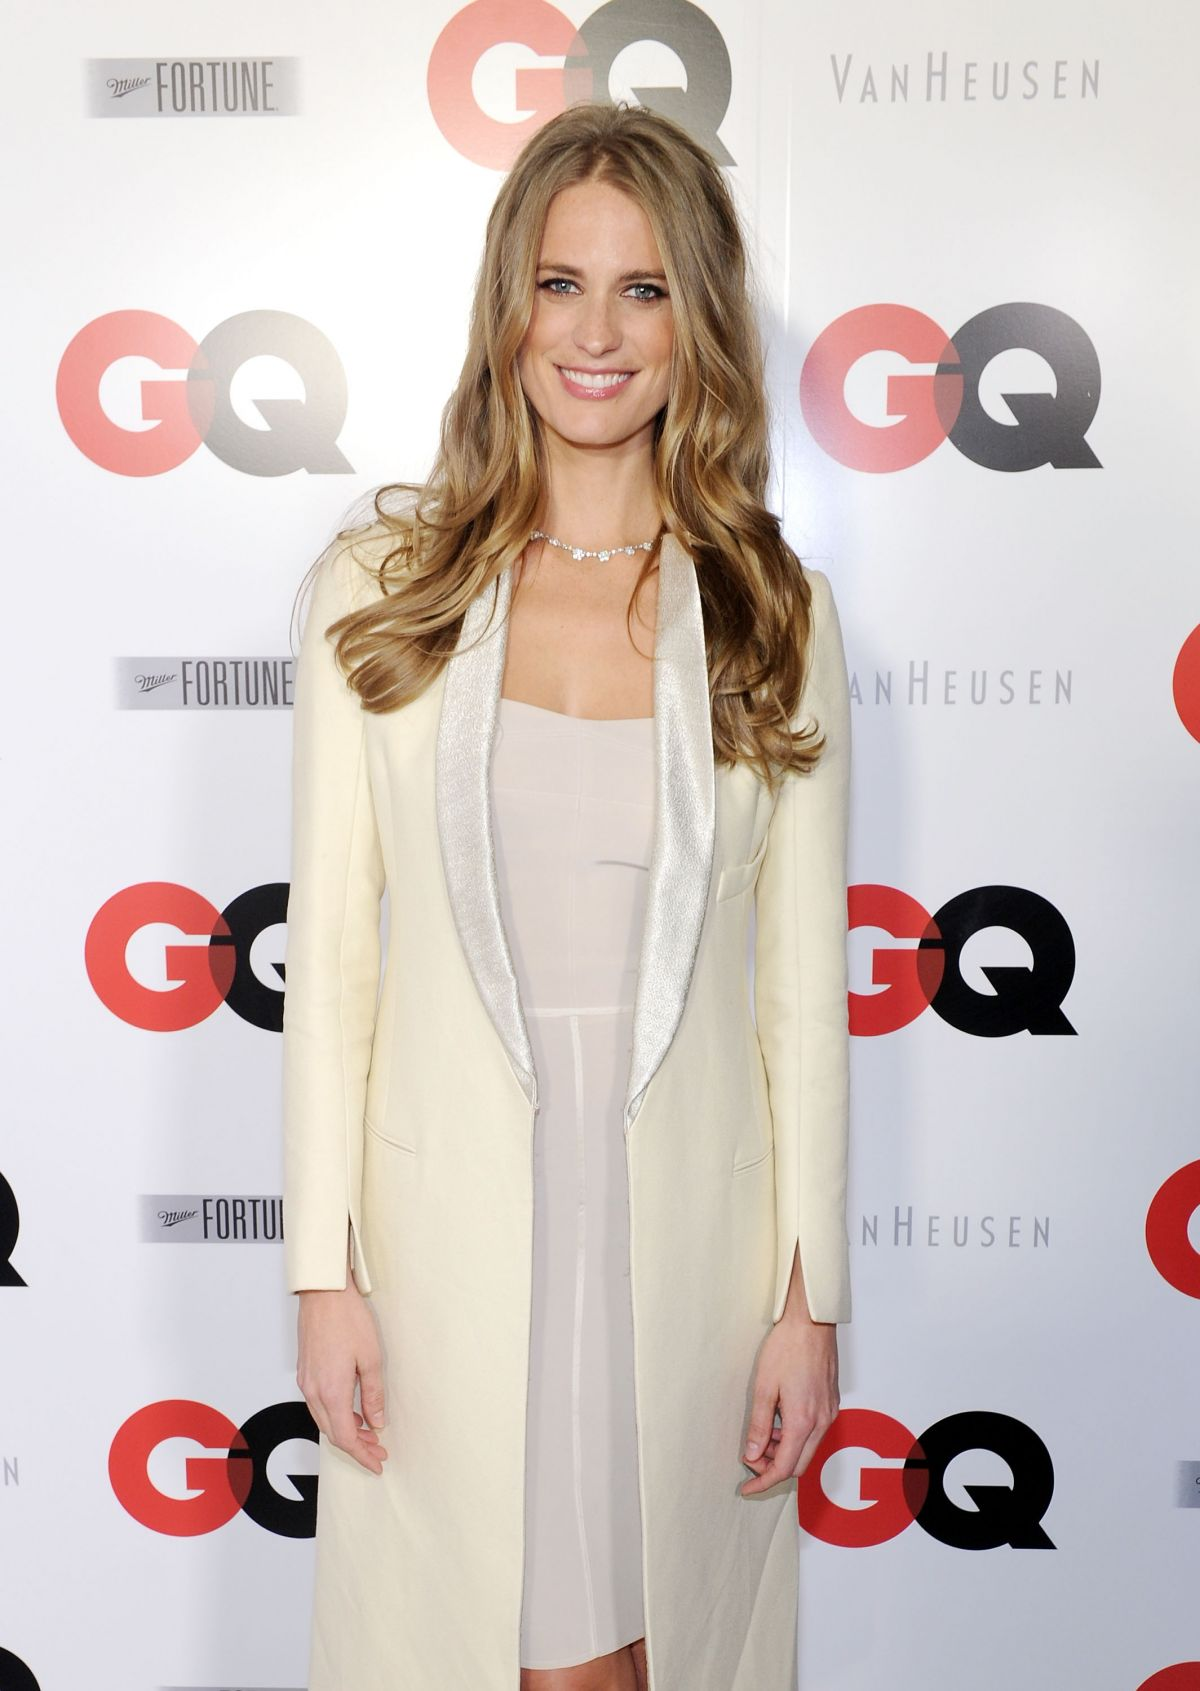 Julie Henderson Attending The GQ Super Bowl Party In New York City